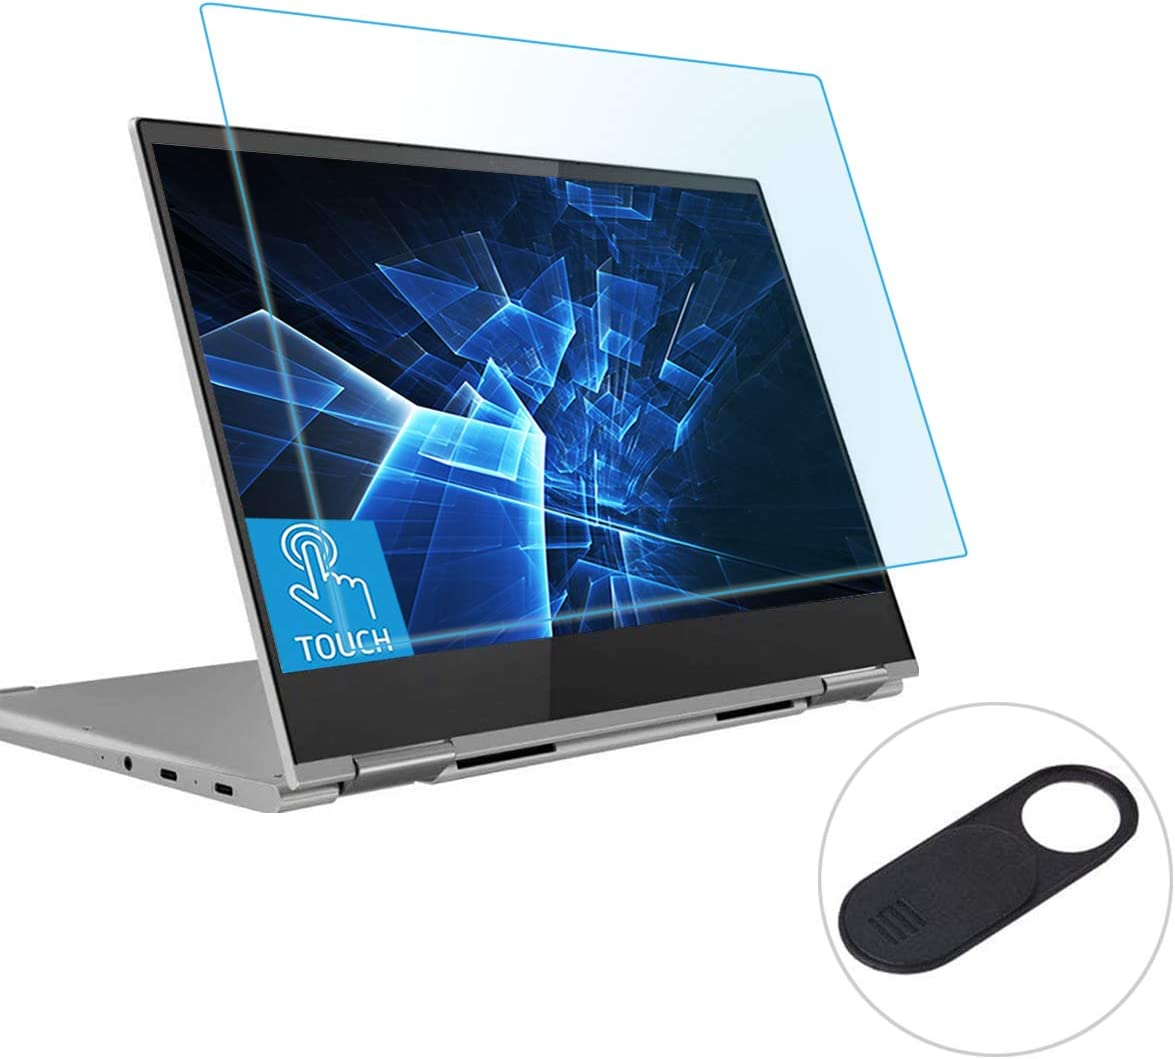 15-EP0006TX 15-ep0010nr etc. Reduces Eye Strain Block UV Anti/ Blue/ Light Glare Screen Protector for 15.6 2020 HP Envy X360 15-ep Series with Fingerprint Reader Touchscreen Laptop